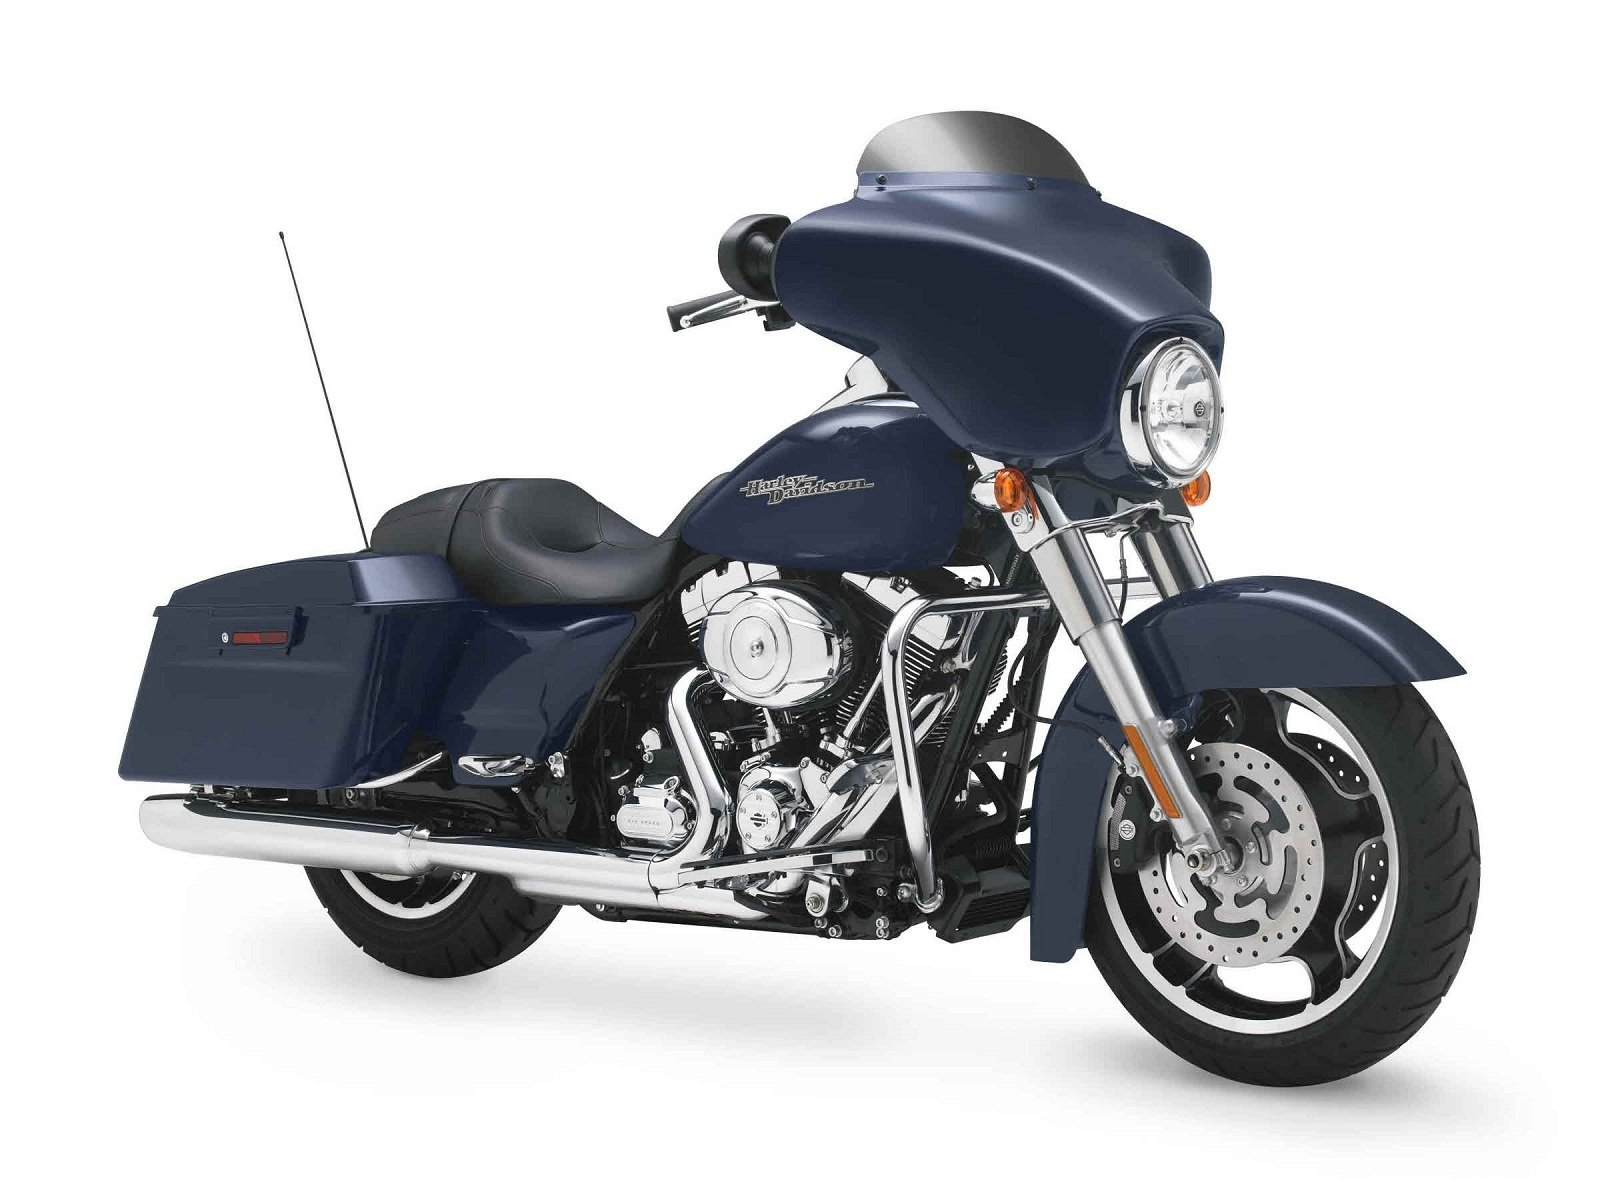 2012 harley davidson touring flhx street glide top speed. Black Bedroom Furniture Sets. Home Design Ideas